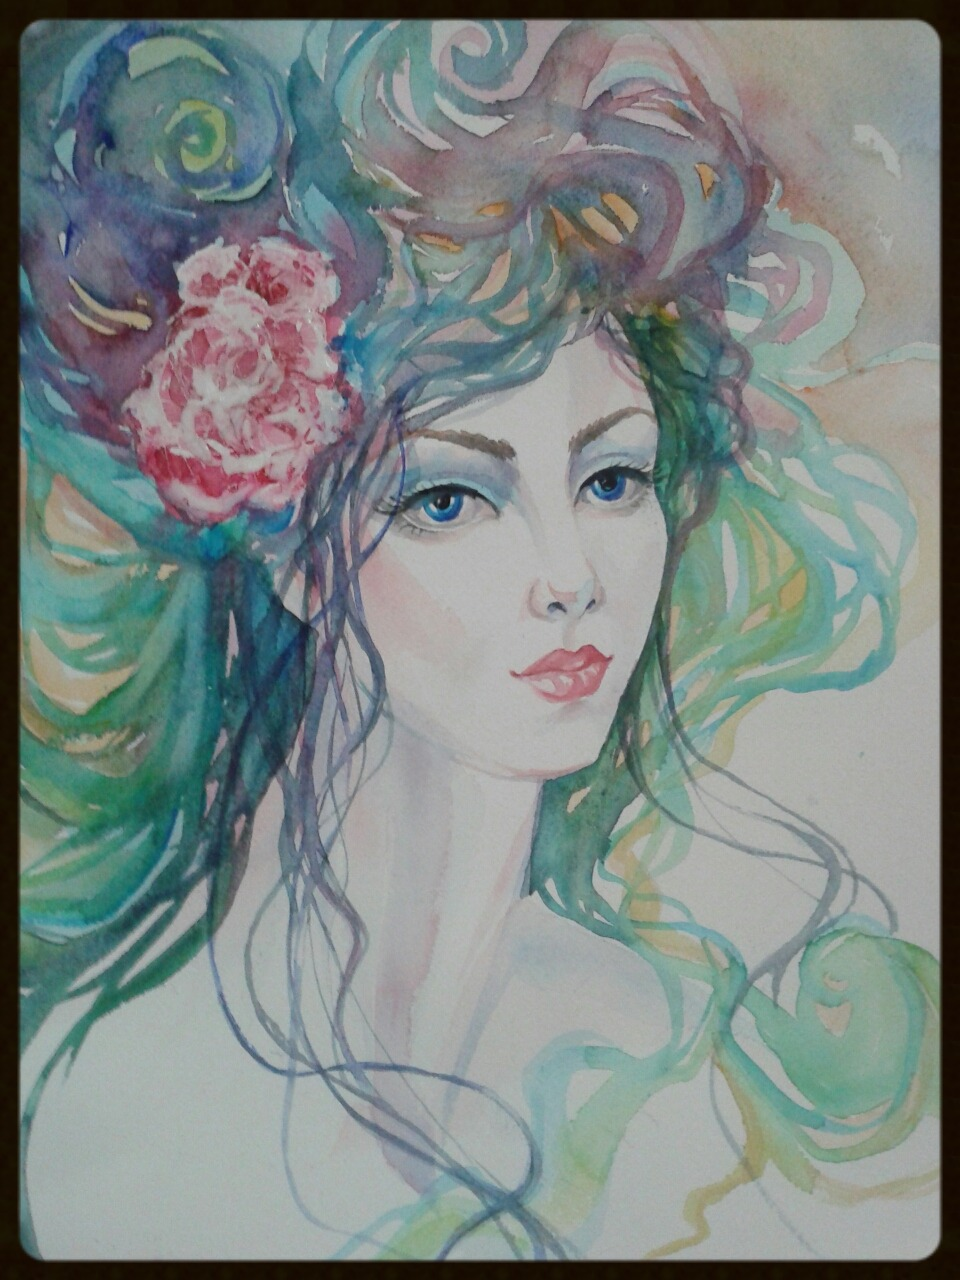 EDITBAKK ORIGINAL WATERCOLOR PEACEFUL MOMENT 22 x 15   $2800